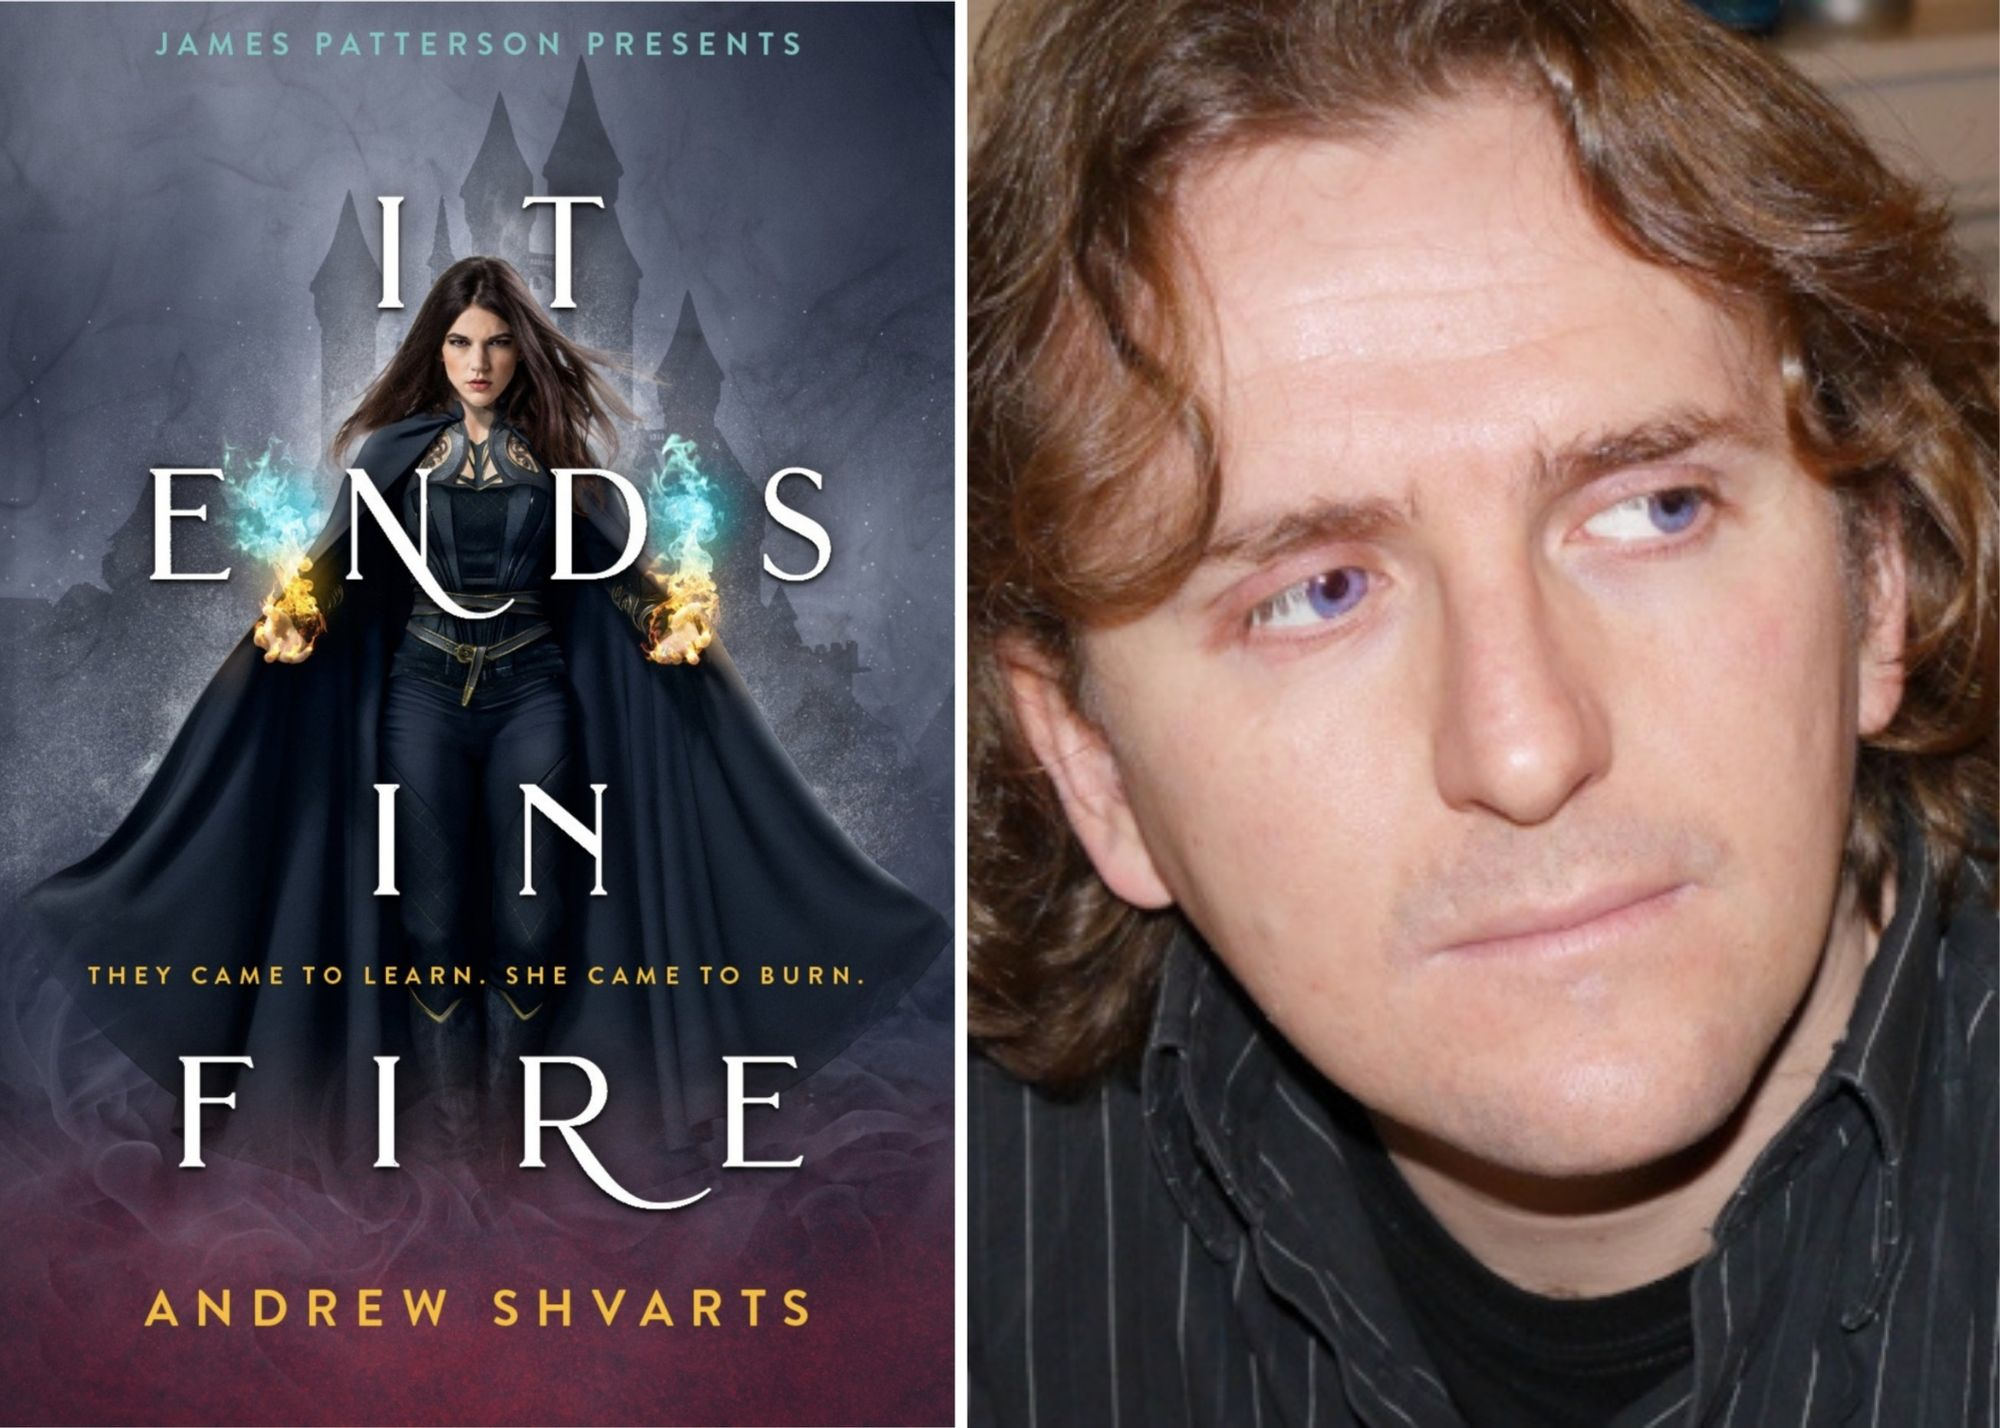 BOOK REVIEW: 'It Ends in Fire' by Andrew Shvarts is the Queer Harry Potter I've Been Waiting For